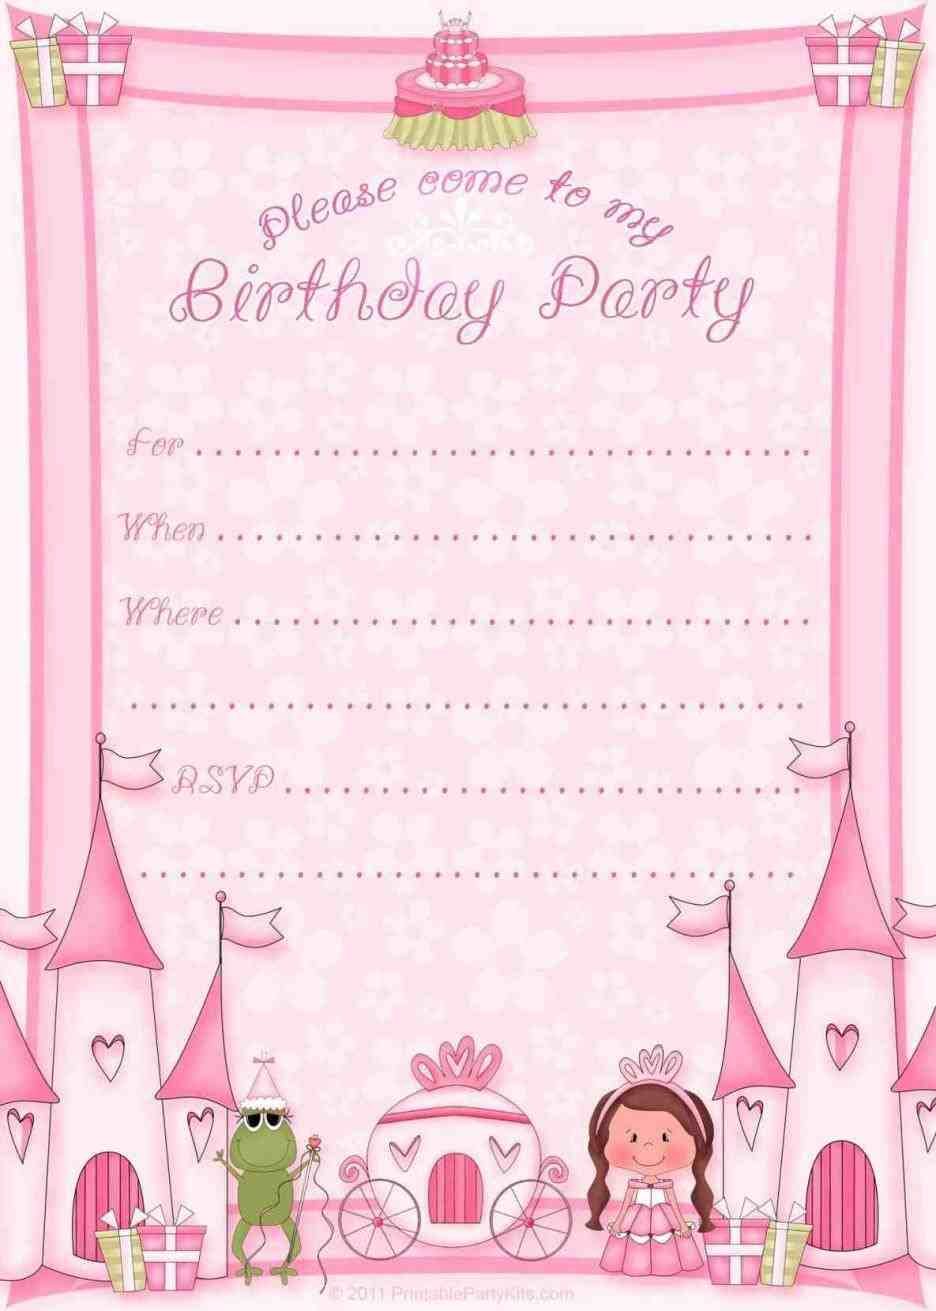 barney birthday card template ; barney-party-invitation-template-friends-and-relatives-records-create-birthday-invitations-cards-tags-year-old-maker-app-invited-card-design-kids-bday-free-digital-templates